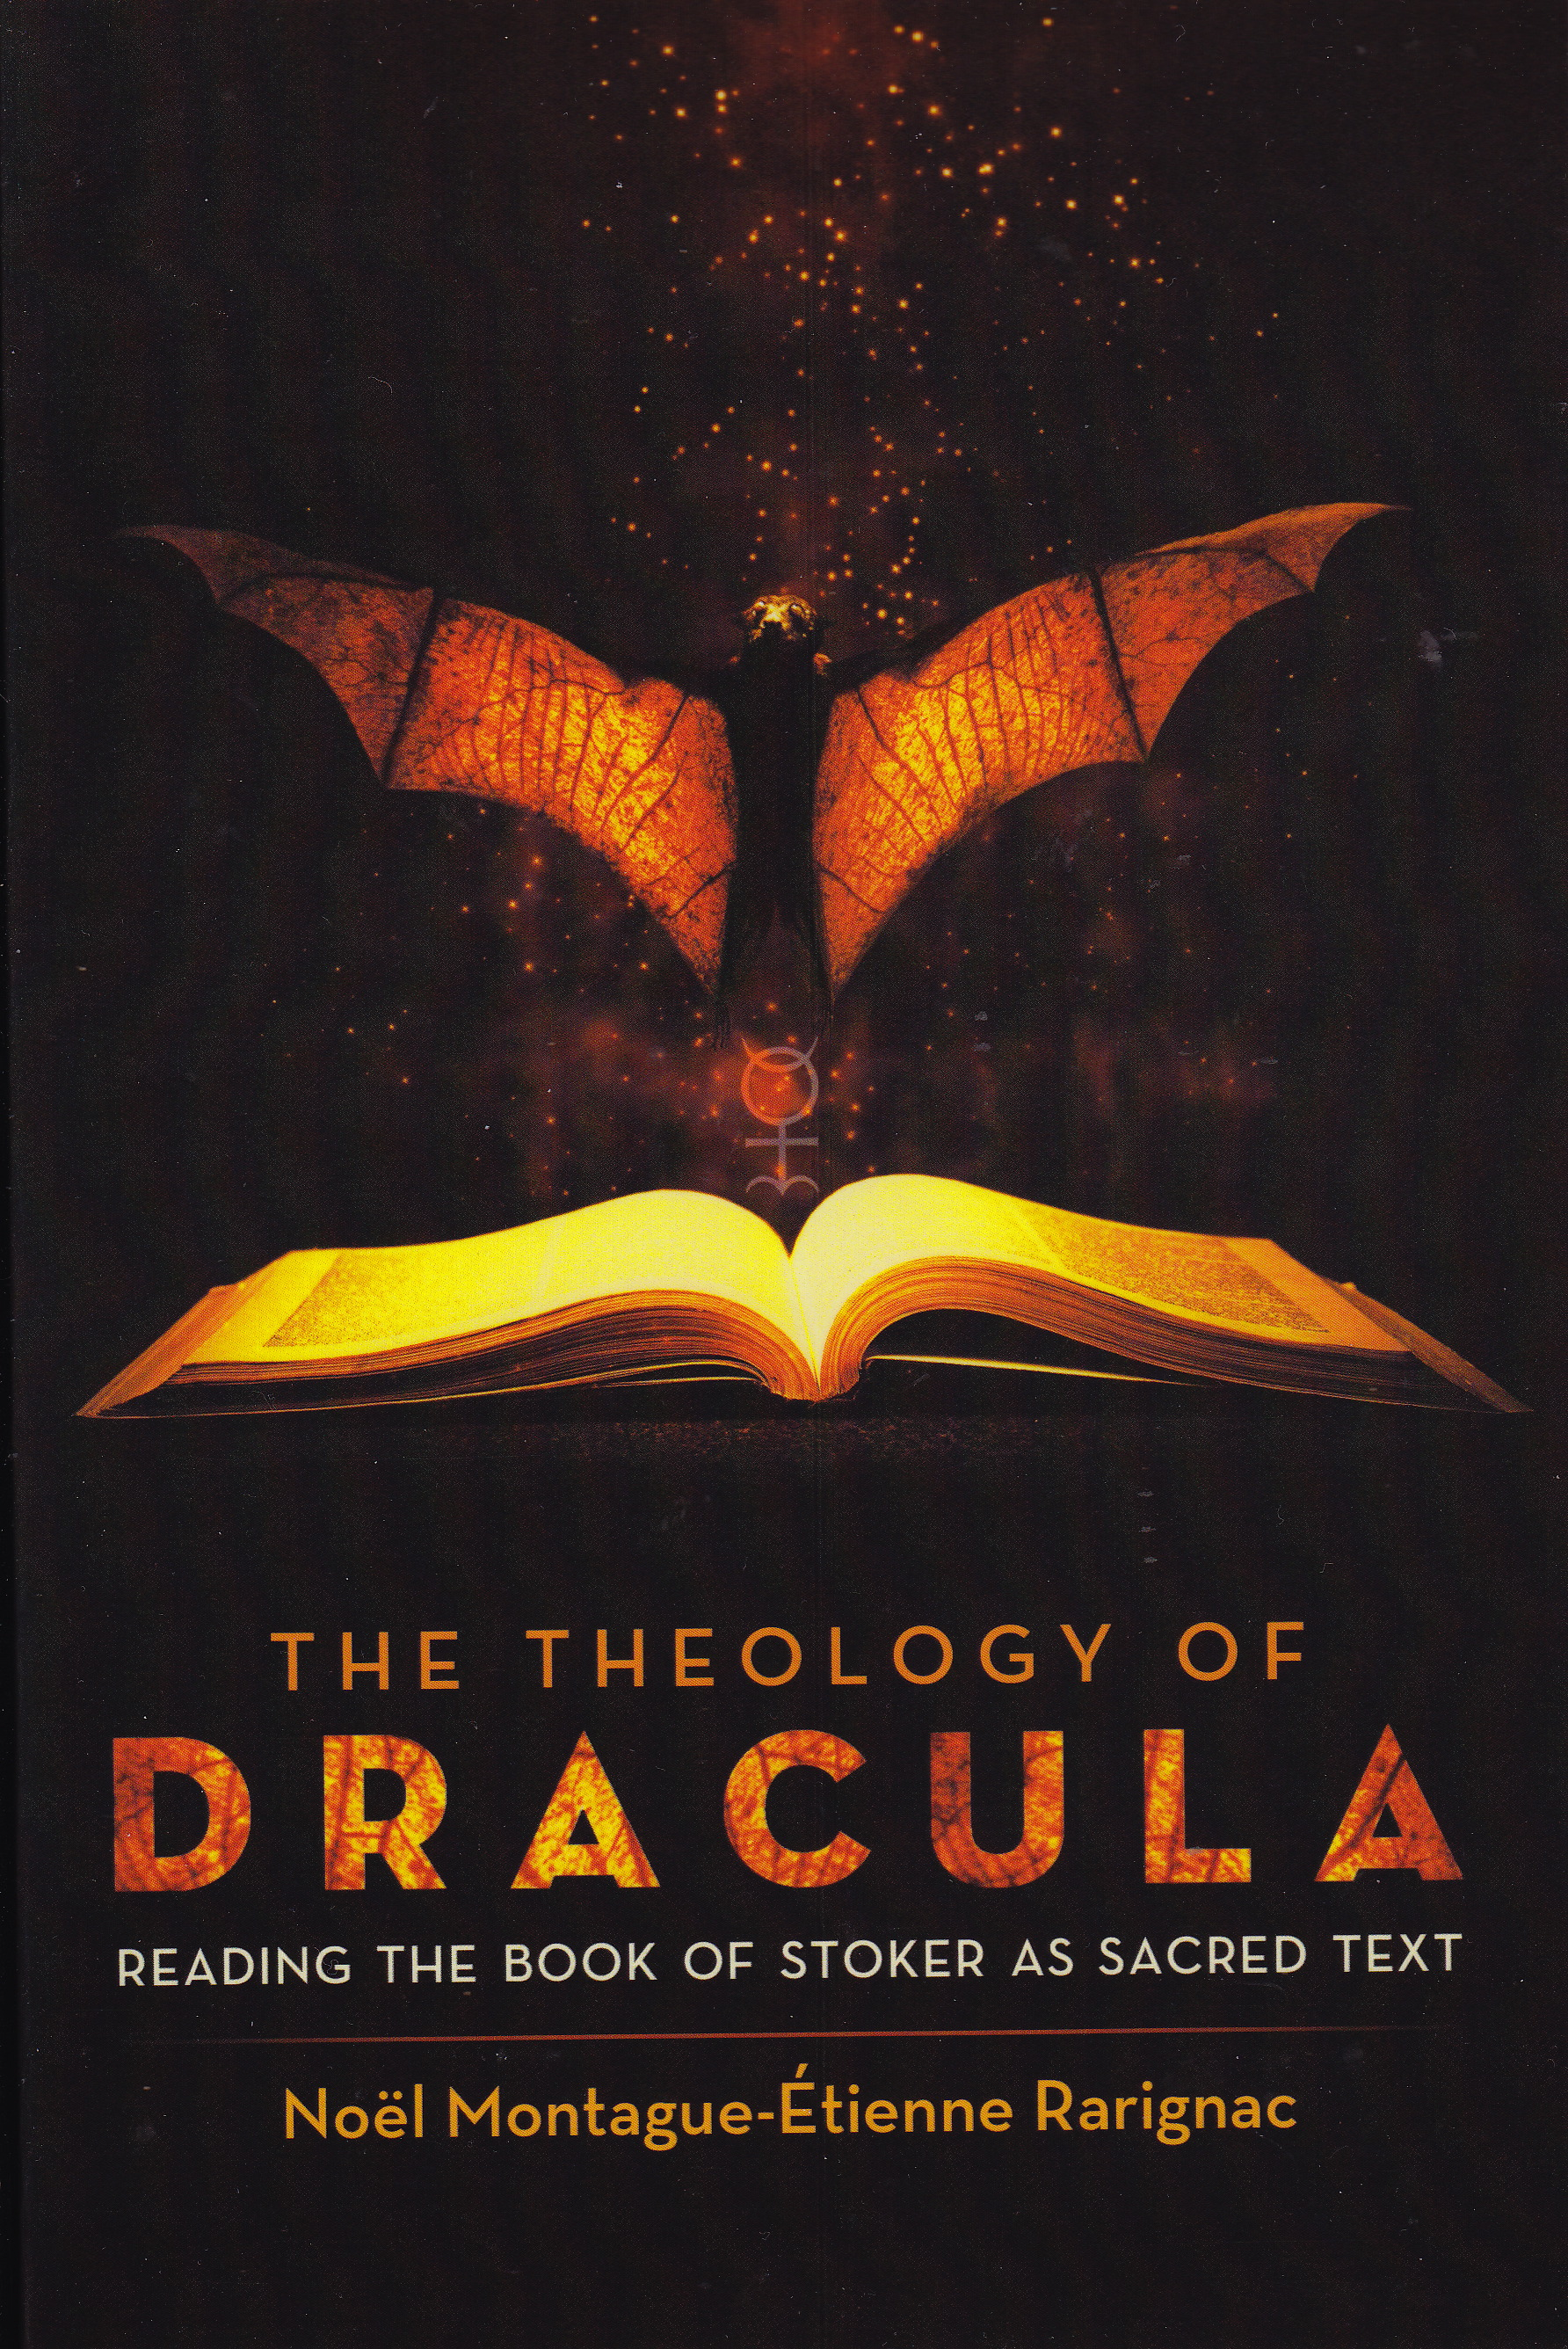 bram stoker s dracula essay example Dracula write an essay on the representation of the themes of good and evil in bram stoker's dracula dracula is a story about the perennial battle between.